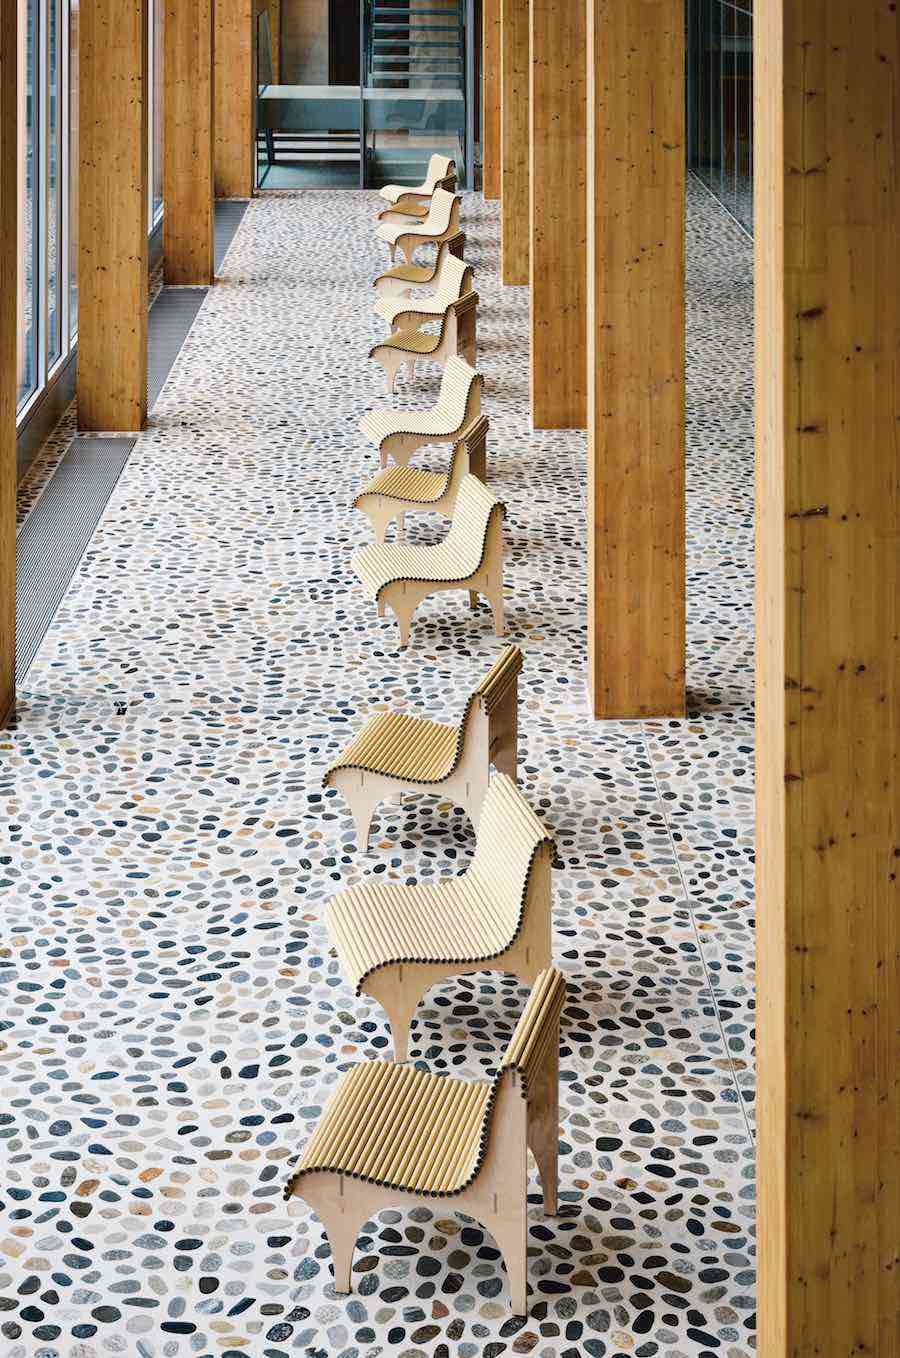 CARTA collection by Shigeru Ban for wb form - Photo: courtesy of wb form.